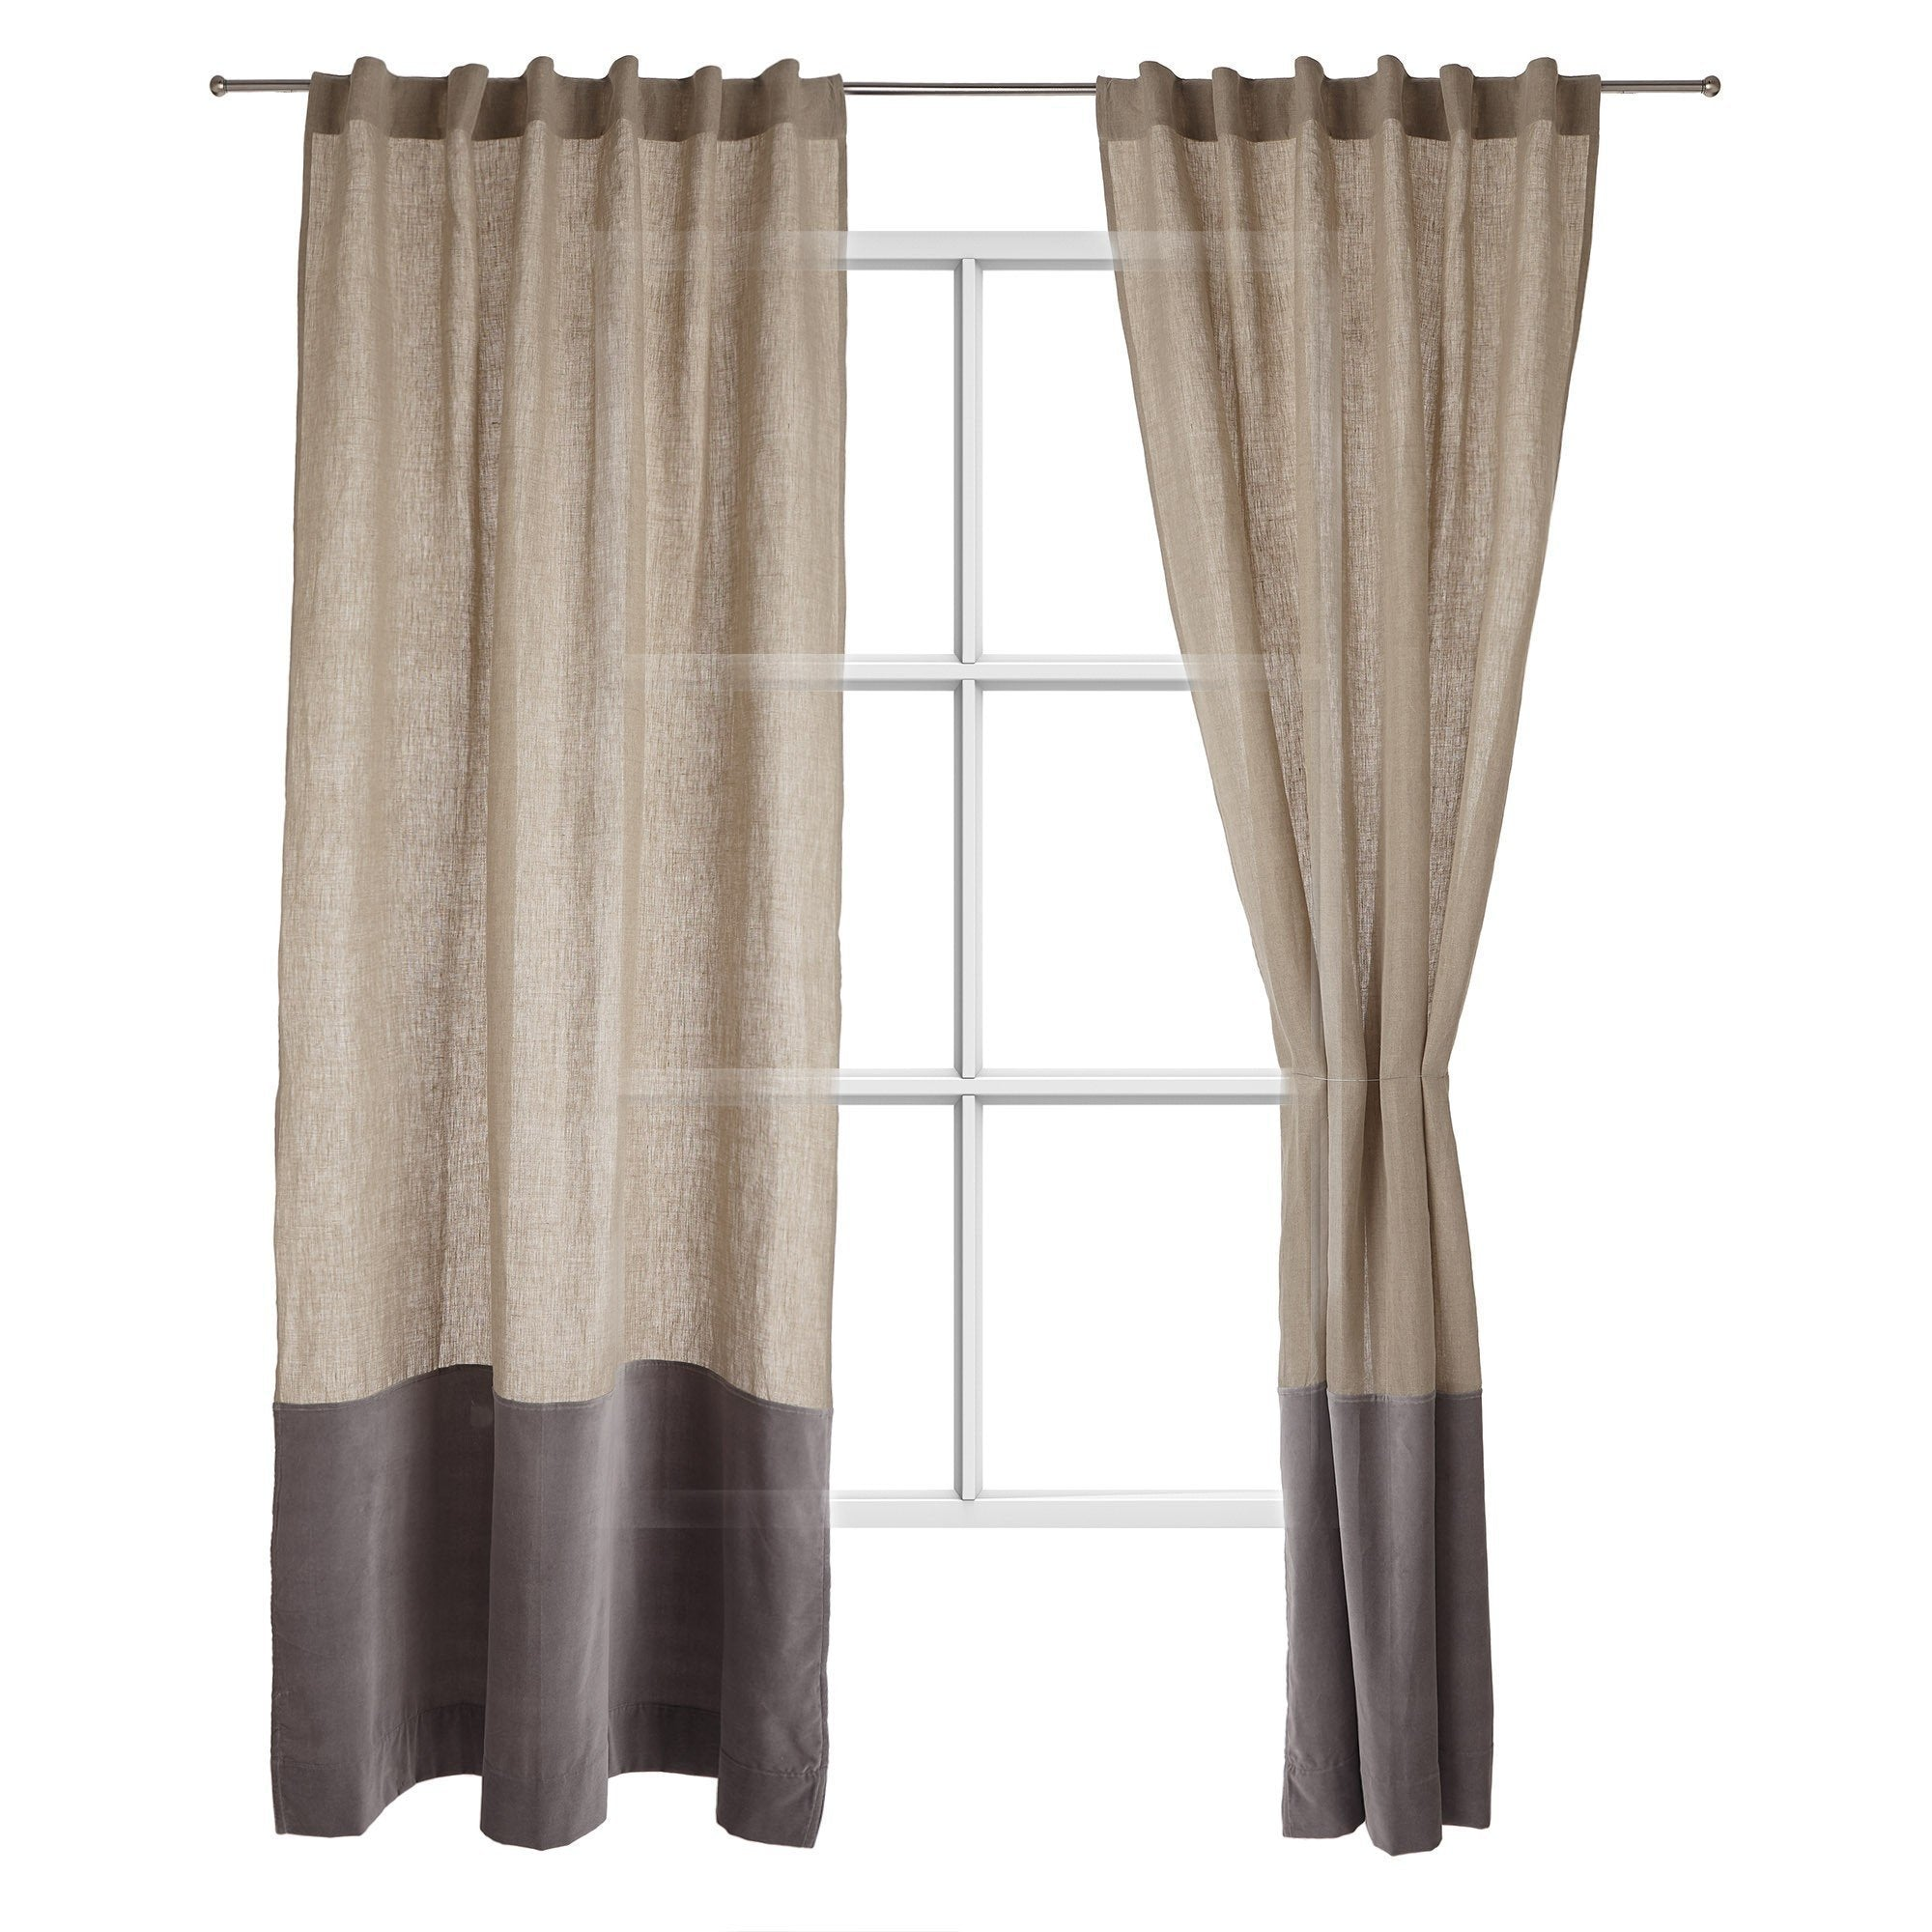 Saveli curtain, natural & grey, 100% linen & 100% cotton